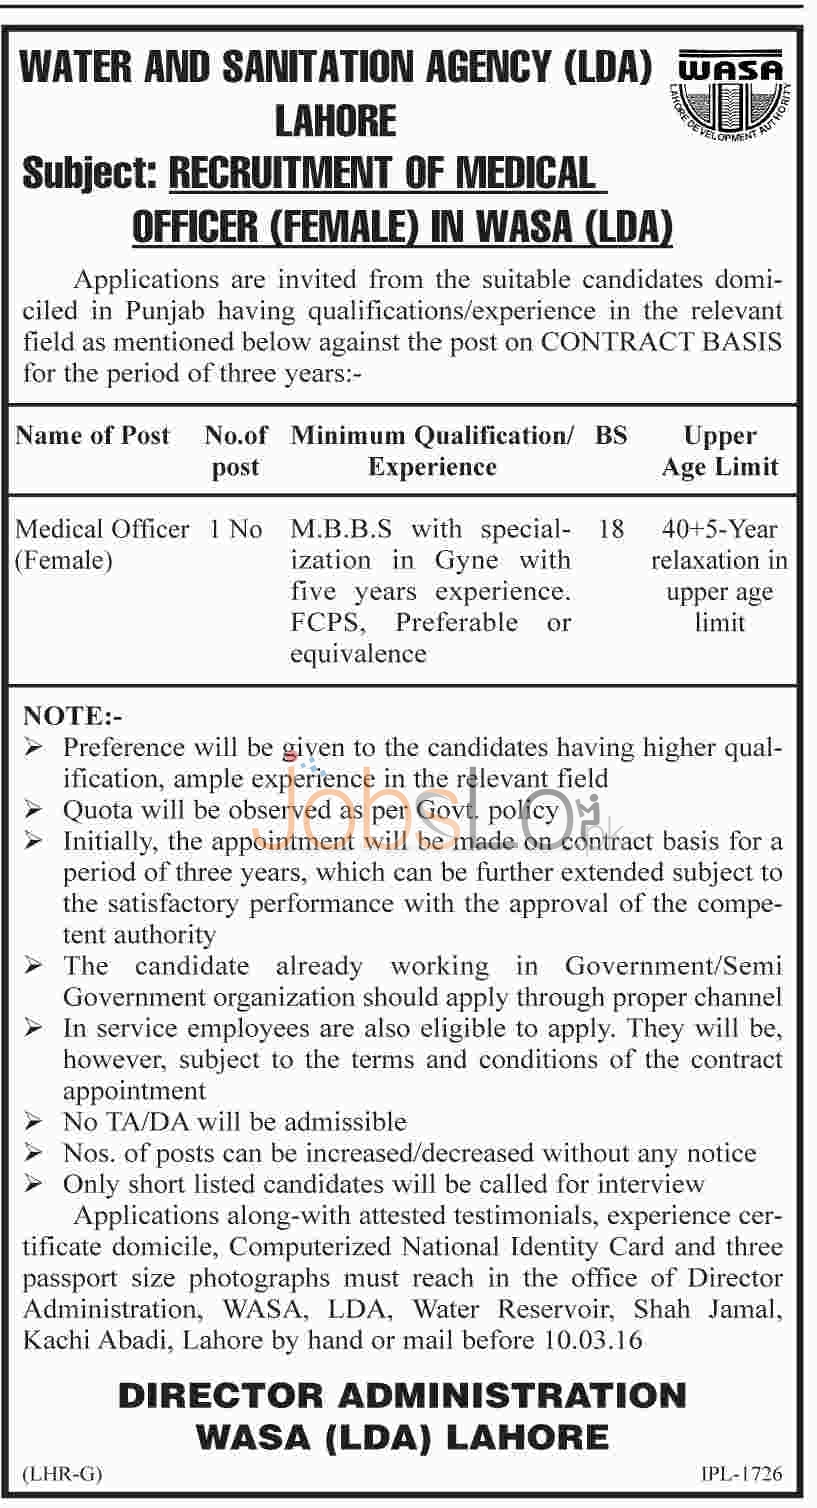 Water & Sanitation Agency (LDA) Jobs 2016 in Lahore for Medical Officer (Female) Career Oppoprtunities